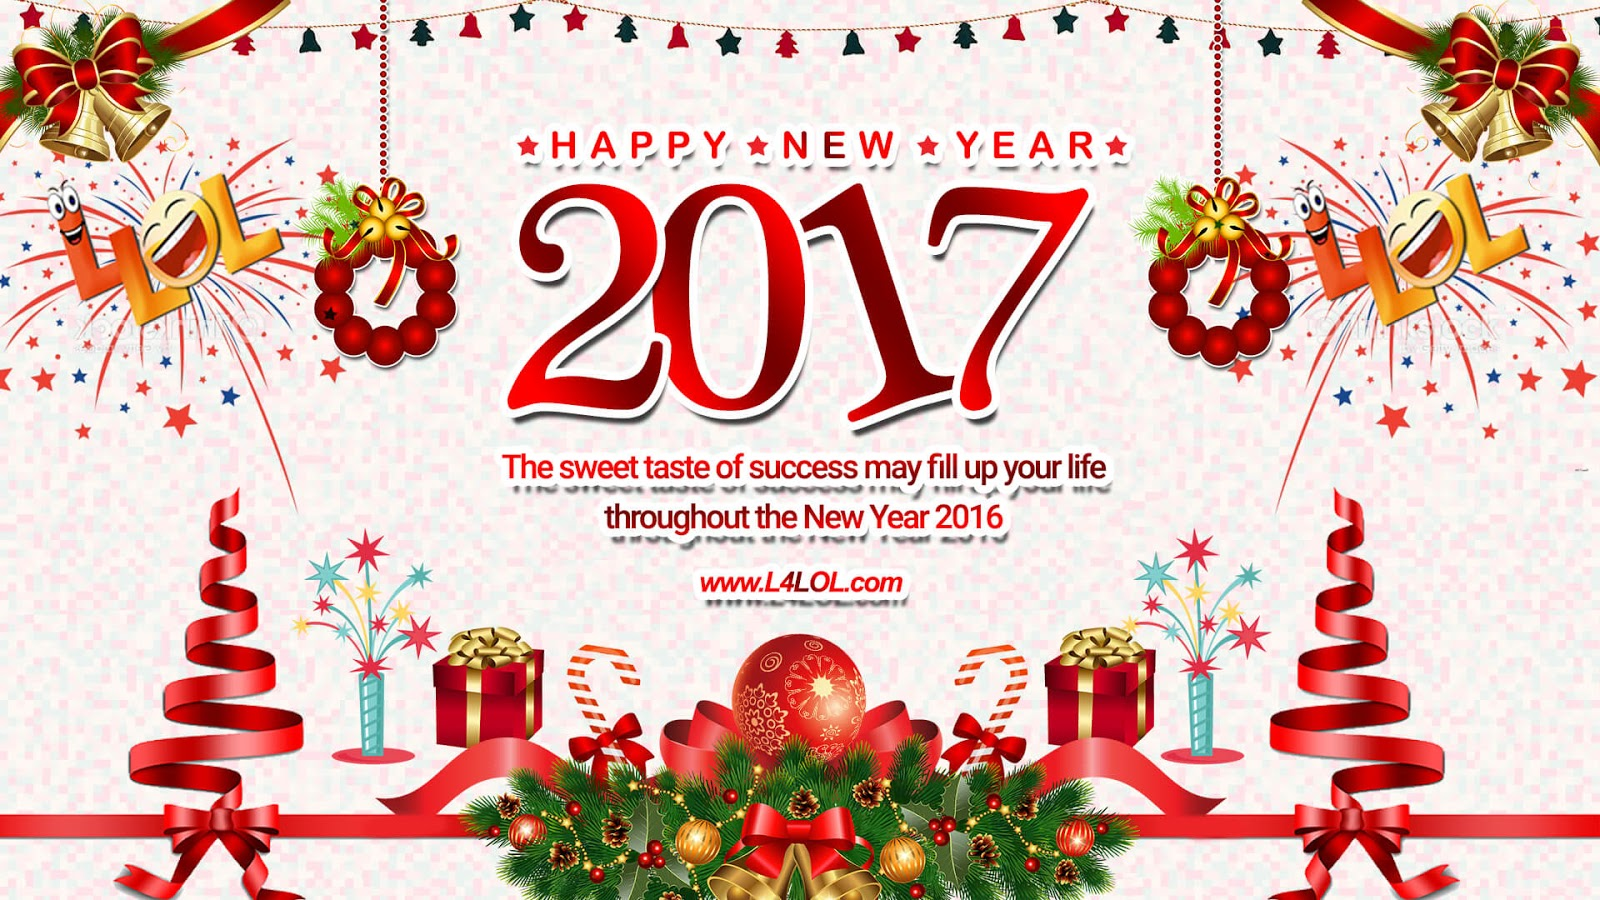 Happy new year card messages merry christmas and happy new year 2018 happy new year card messages kristyandbryce Gallery